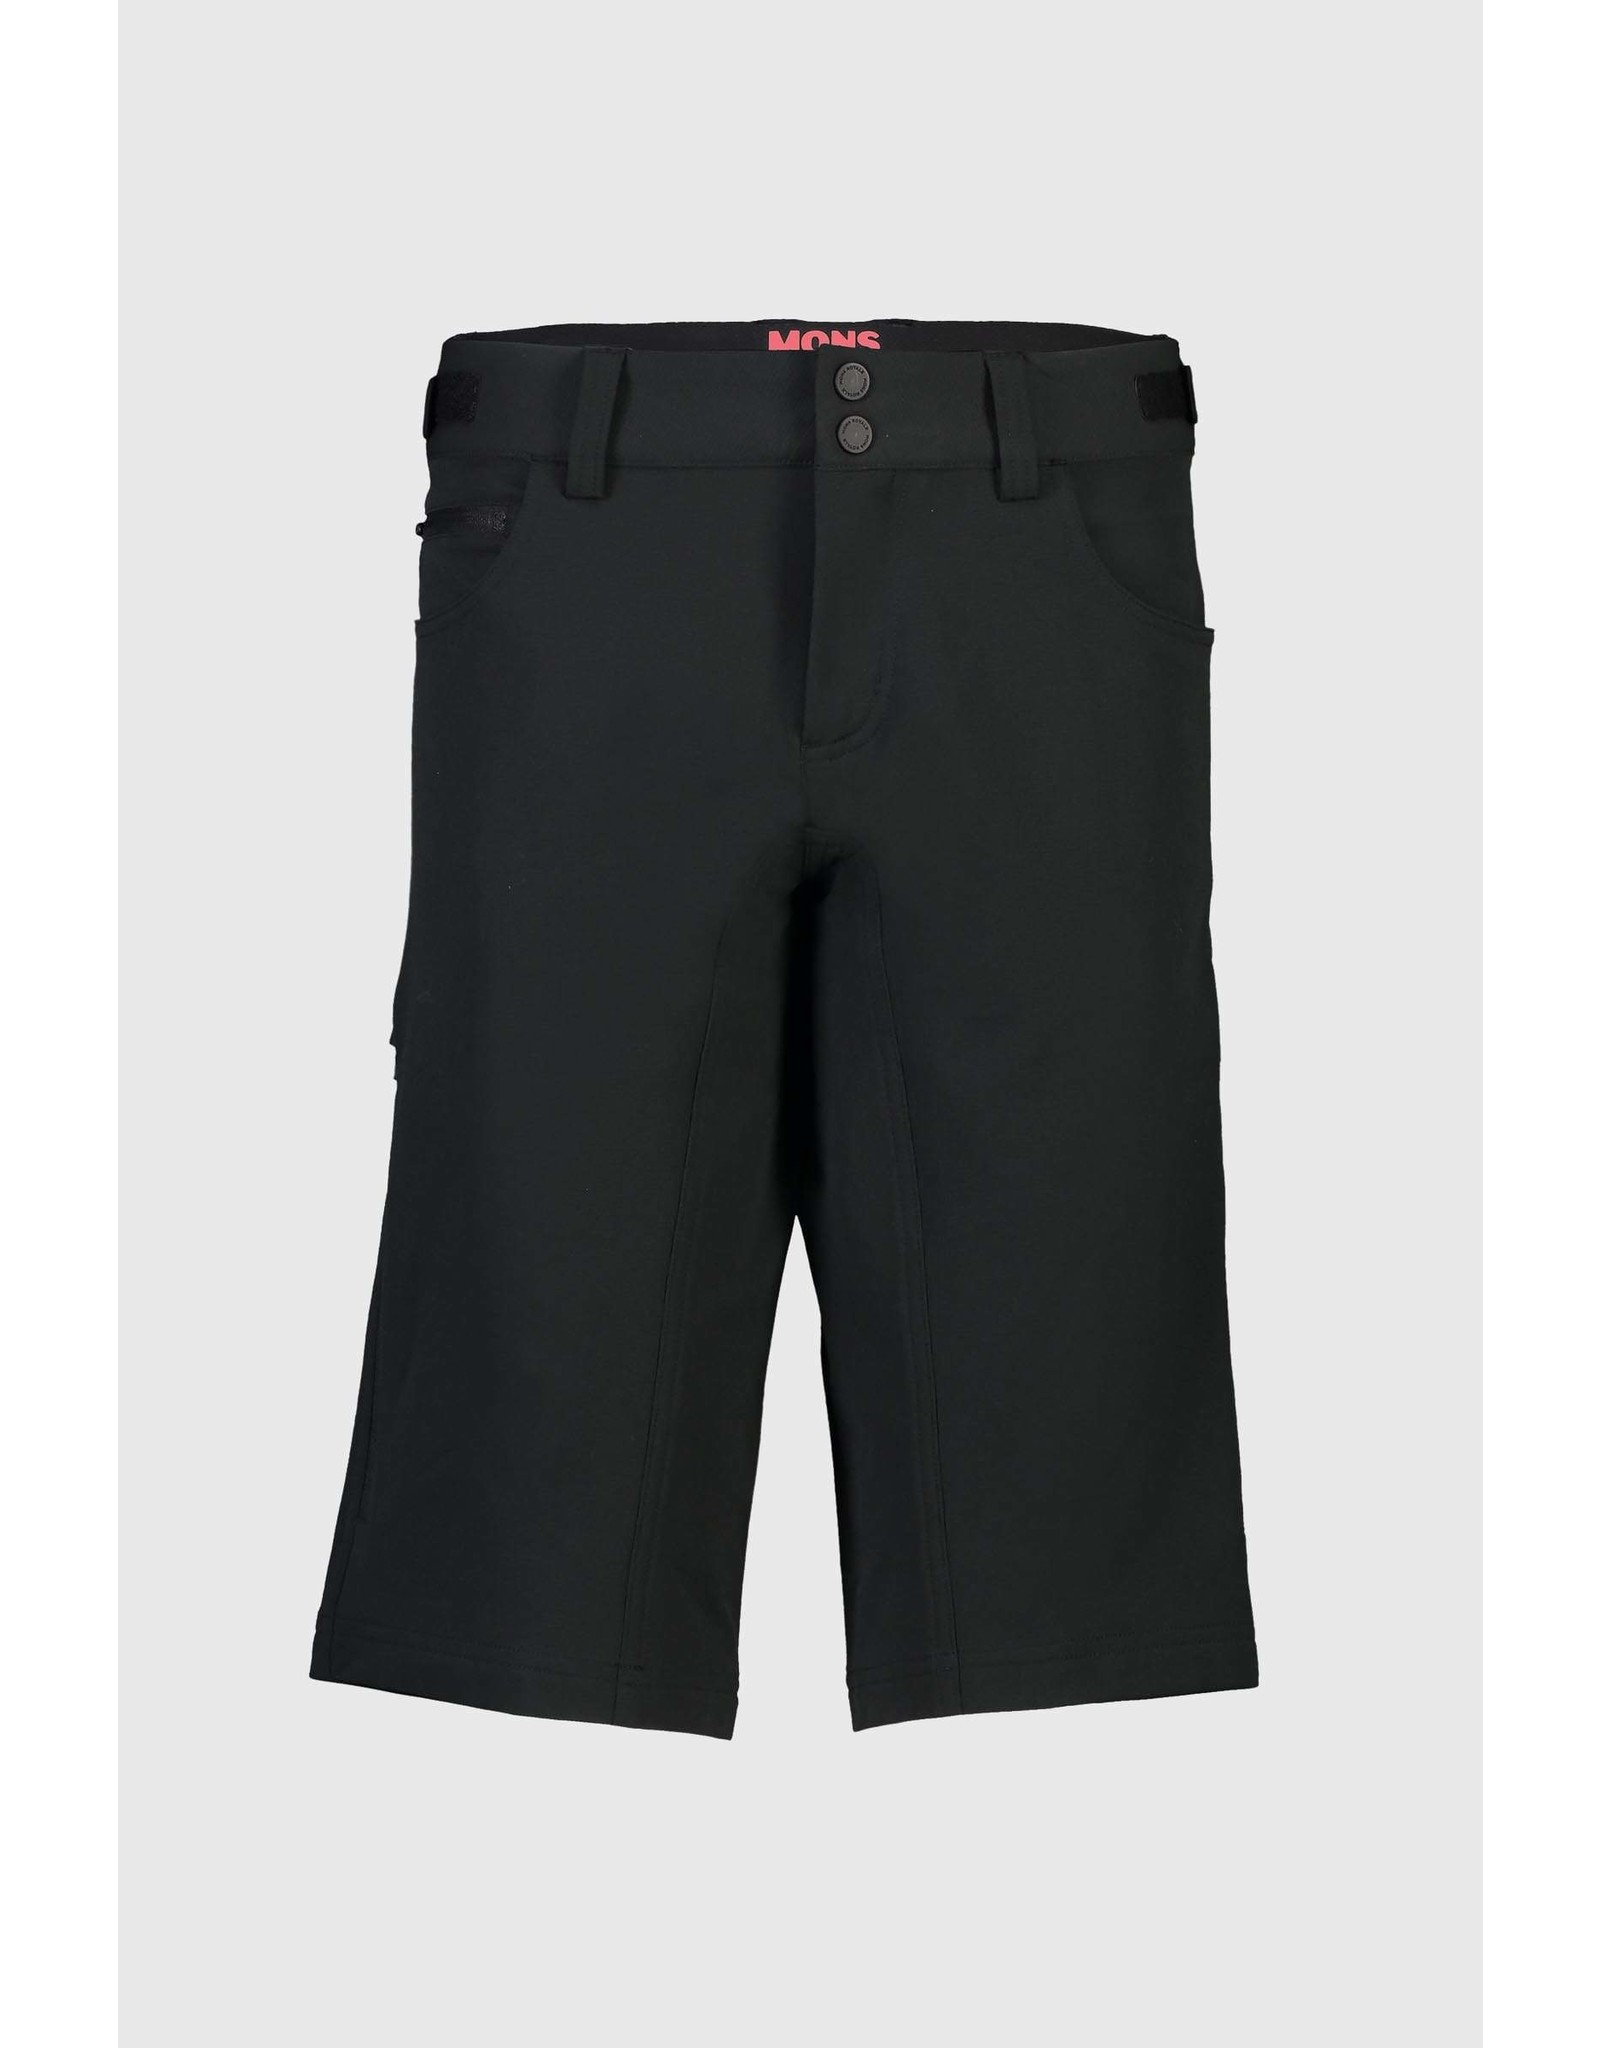 Mons Royale Mons Royale Momentum 2.0 Short Womens Black